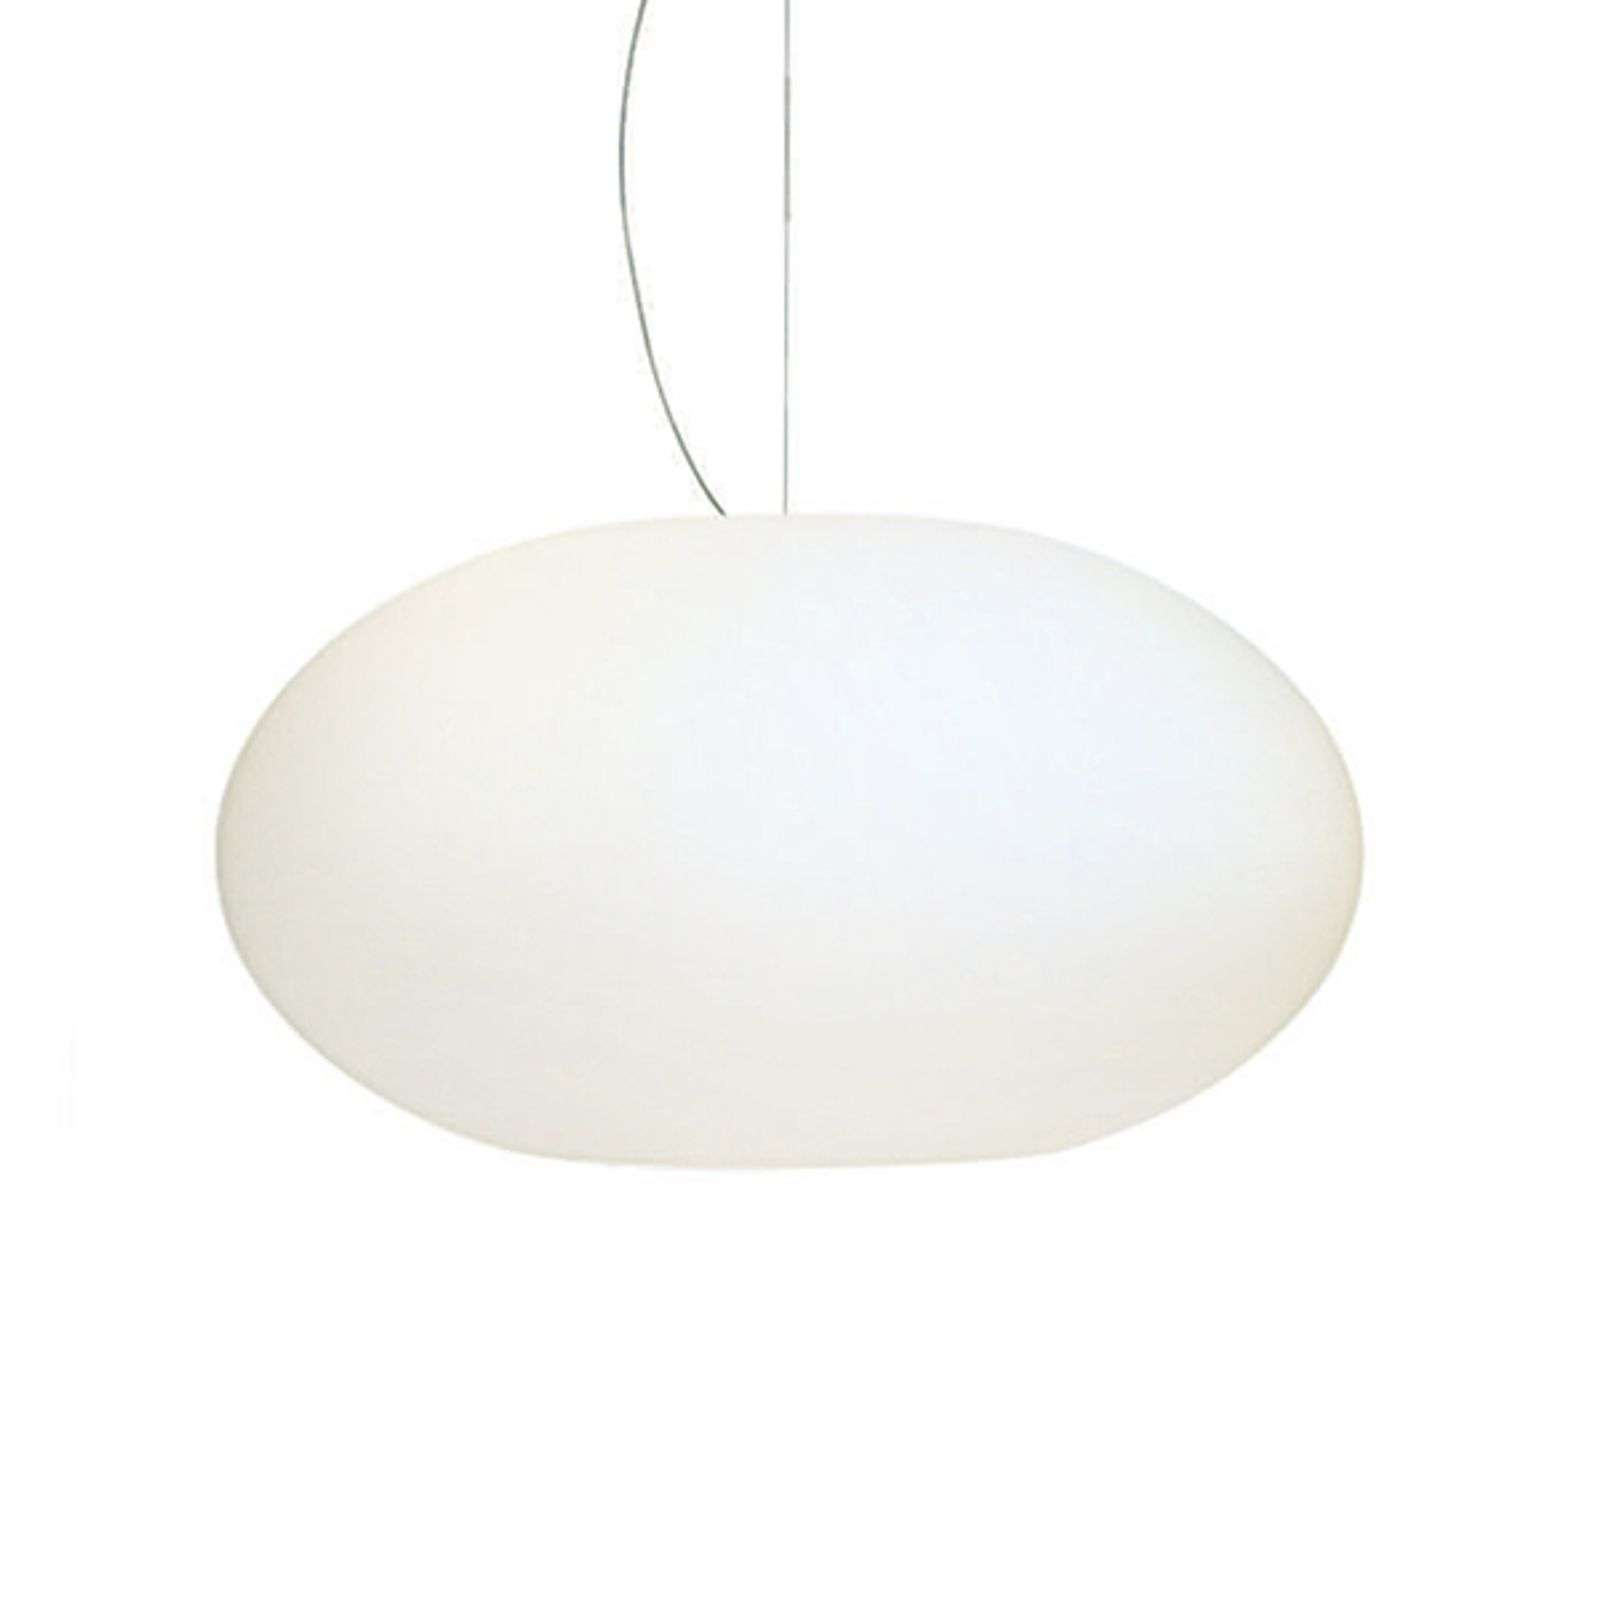 Suspension verre Aih 38 cm blanche brillante